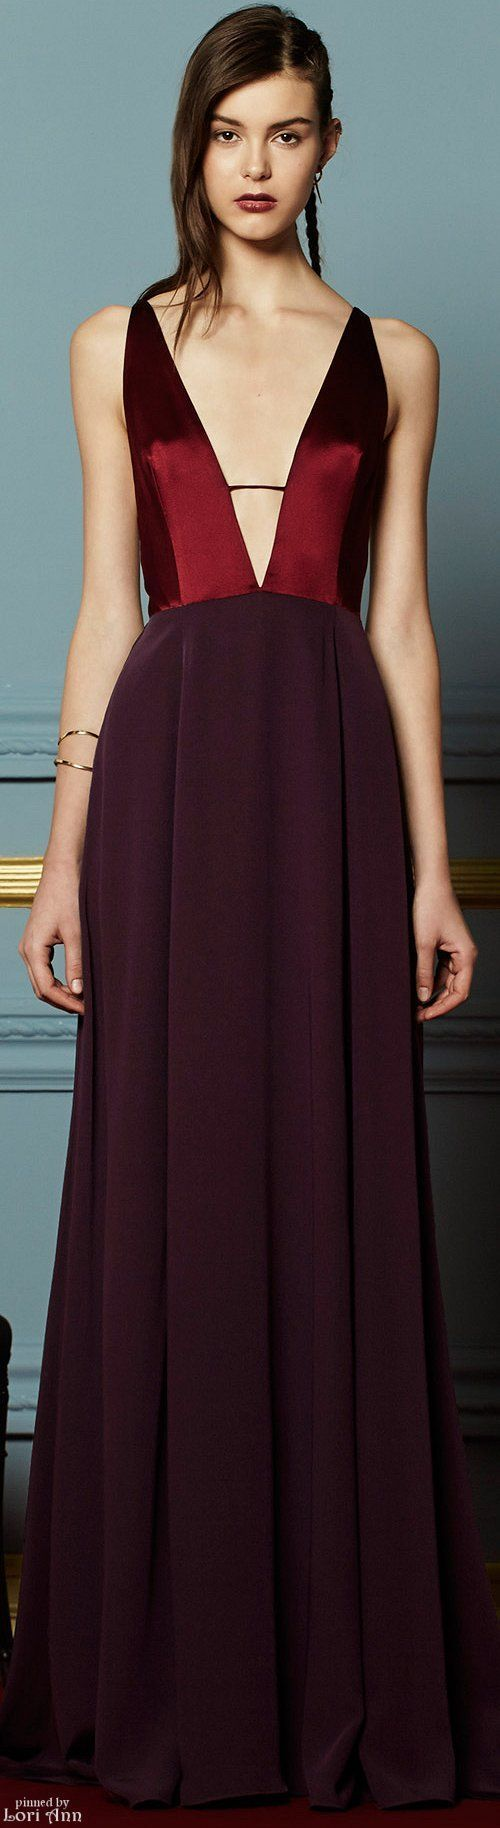 burgundy dress @roressclothes closet ideas women fashion outfit clothing style